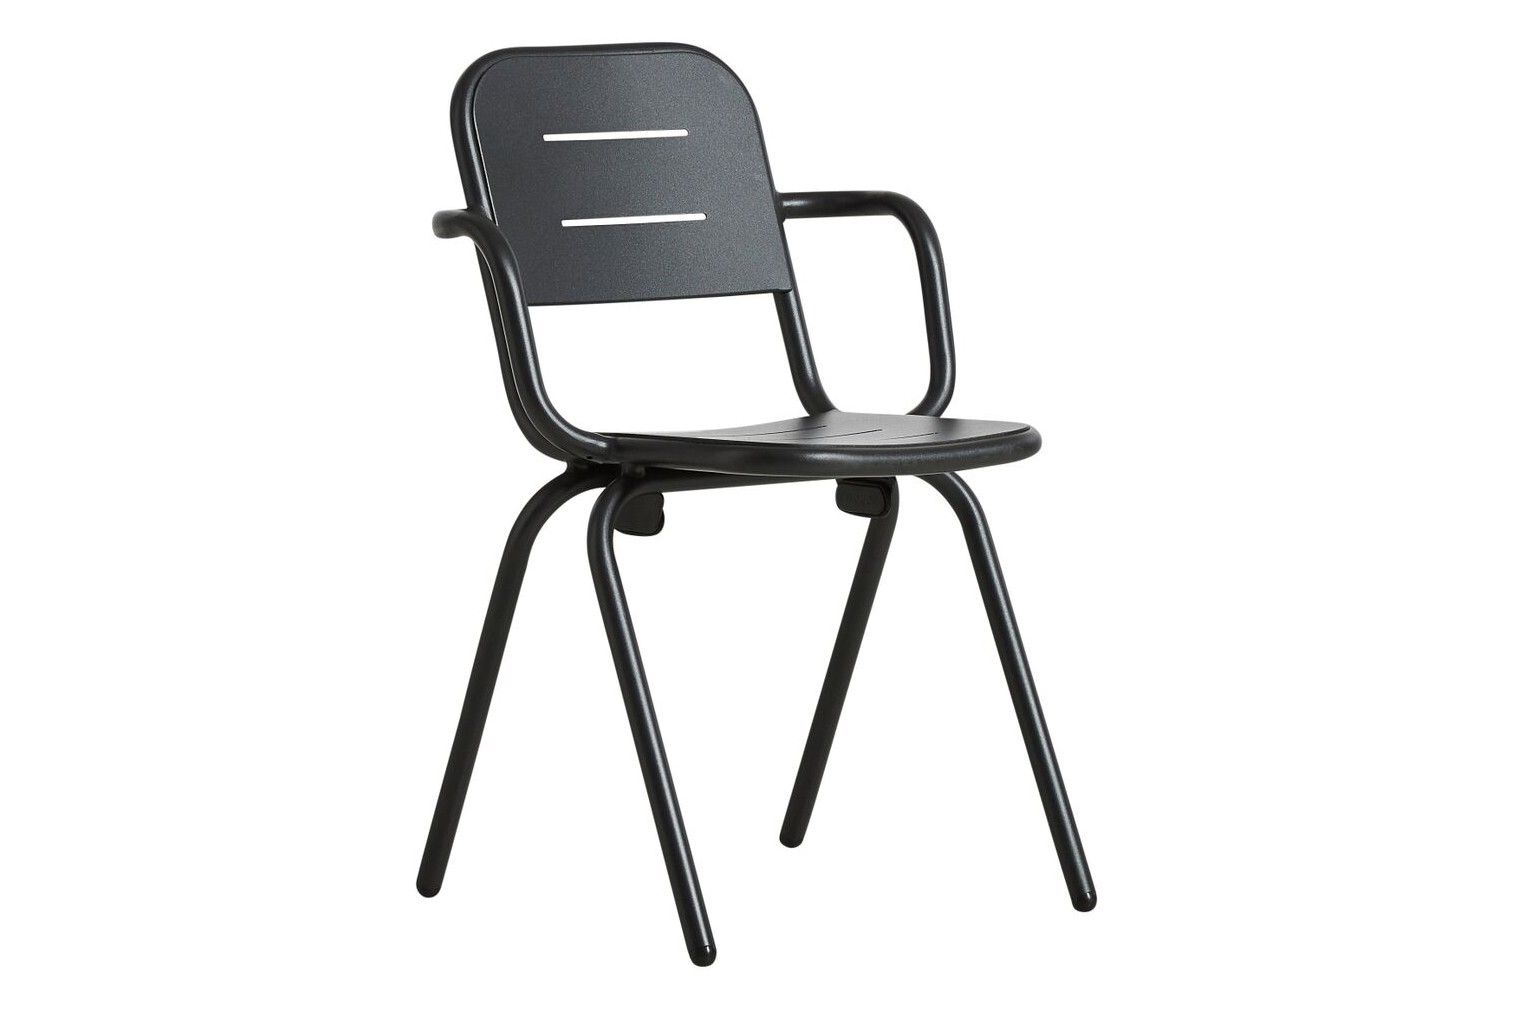 Ray Cafe Dining Chair with Armrests - Set of 2 Charcoal Black